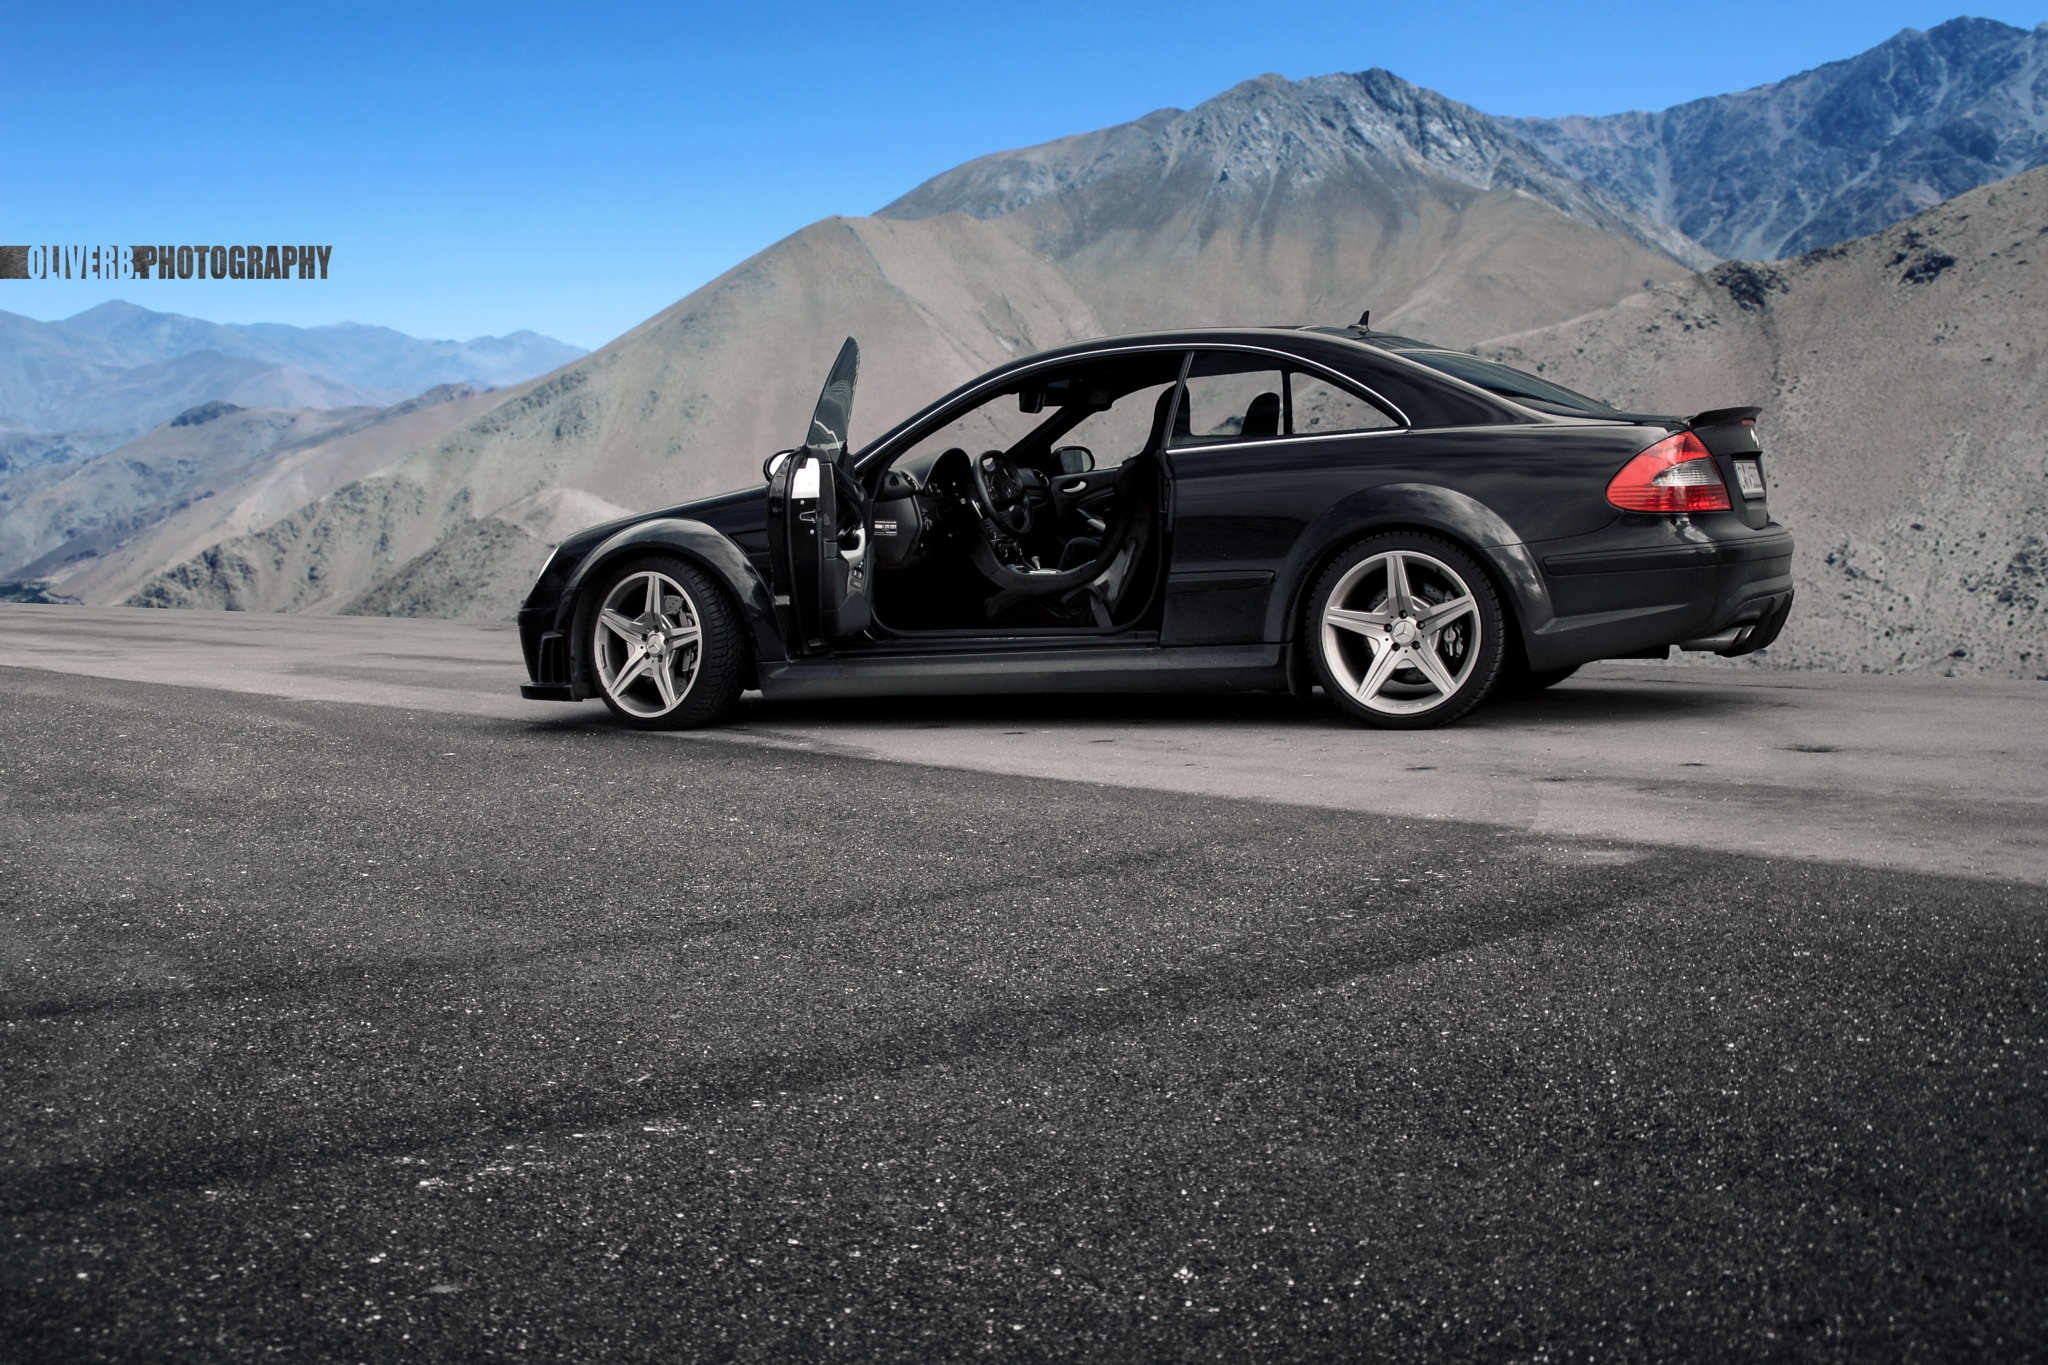 Mercedes CLK Black Series by OliverBPhotograpy